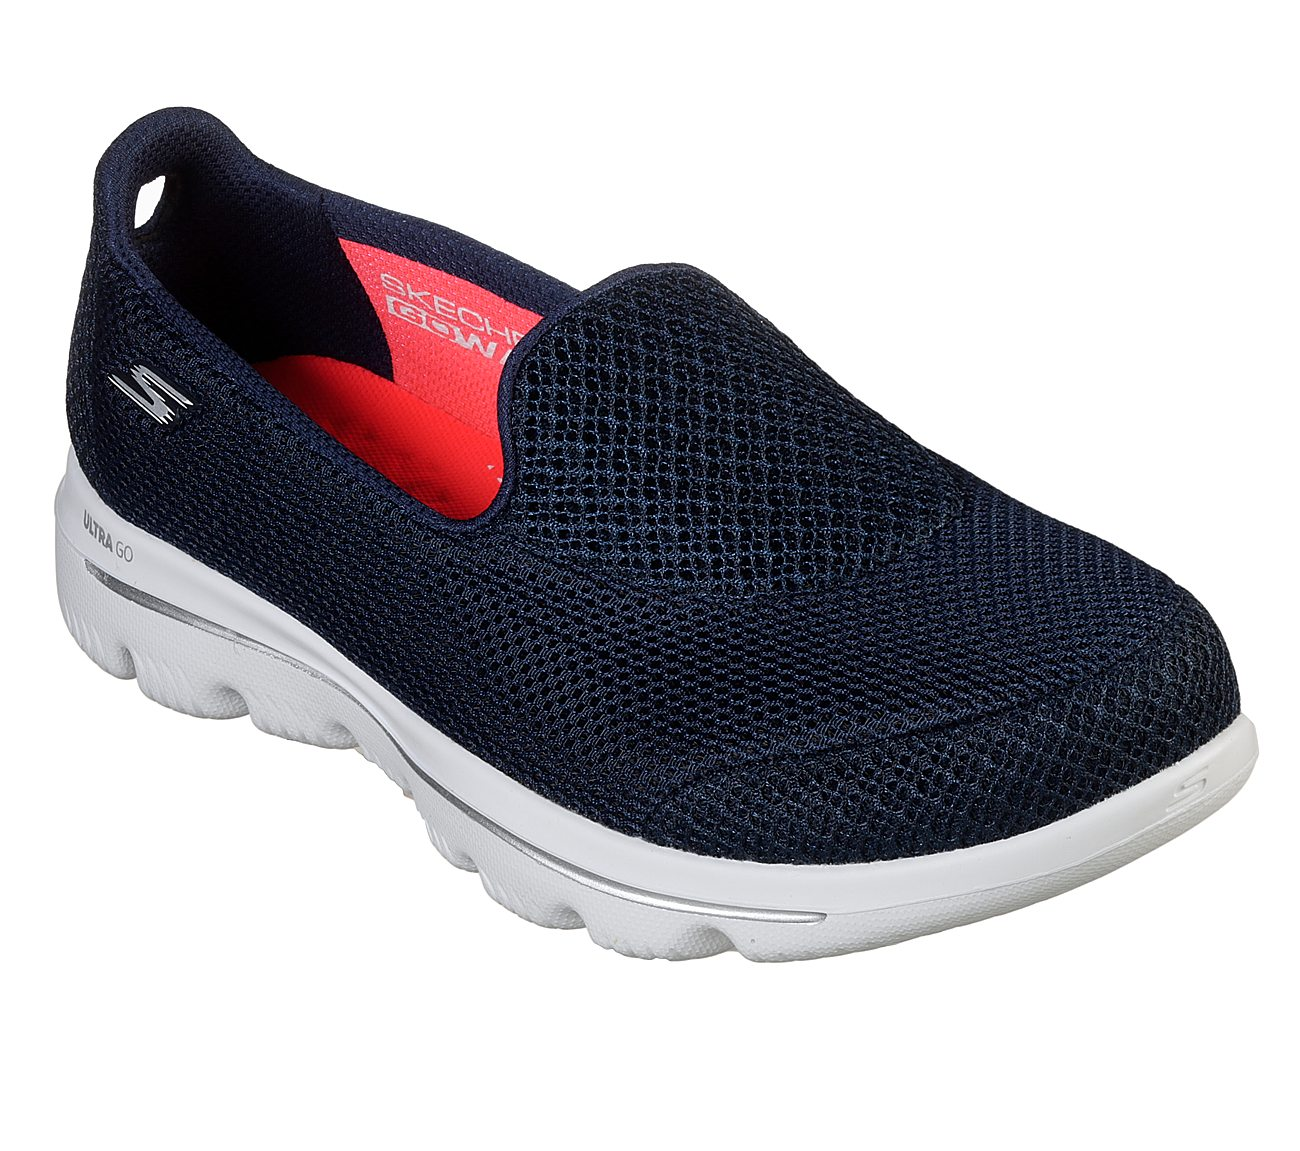 2123694e47087 Buy SKECHERS Skechers GOwalk Evolution Ultra - Interact Skechers ...